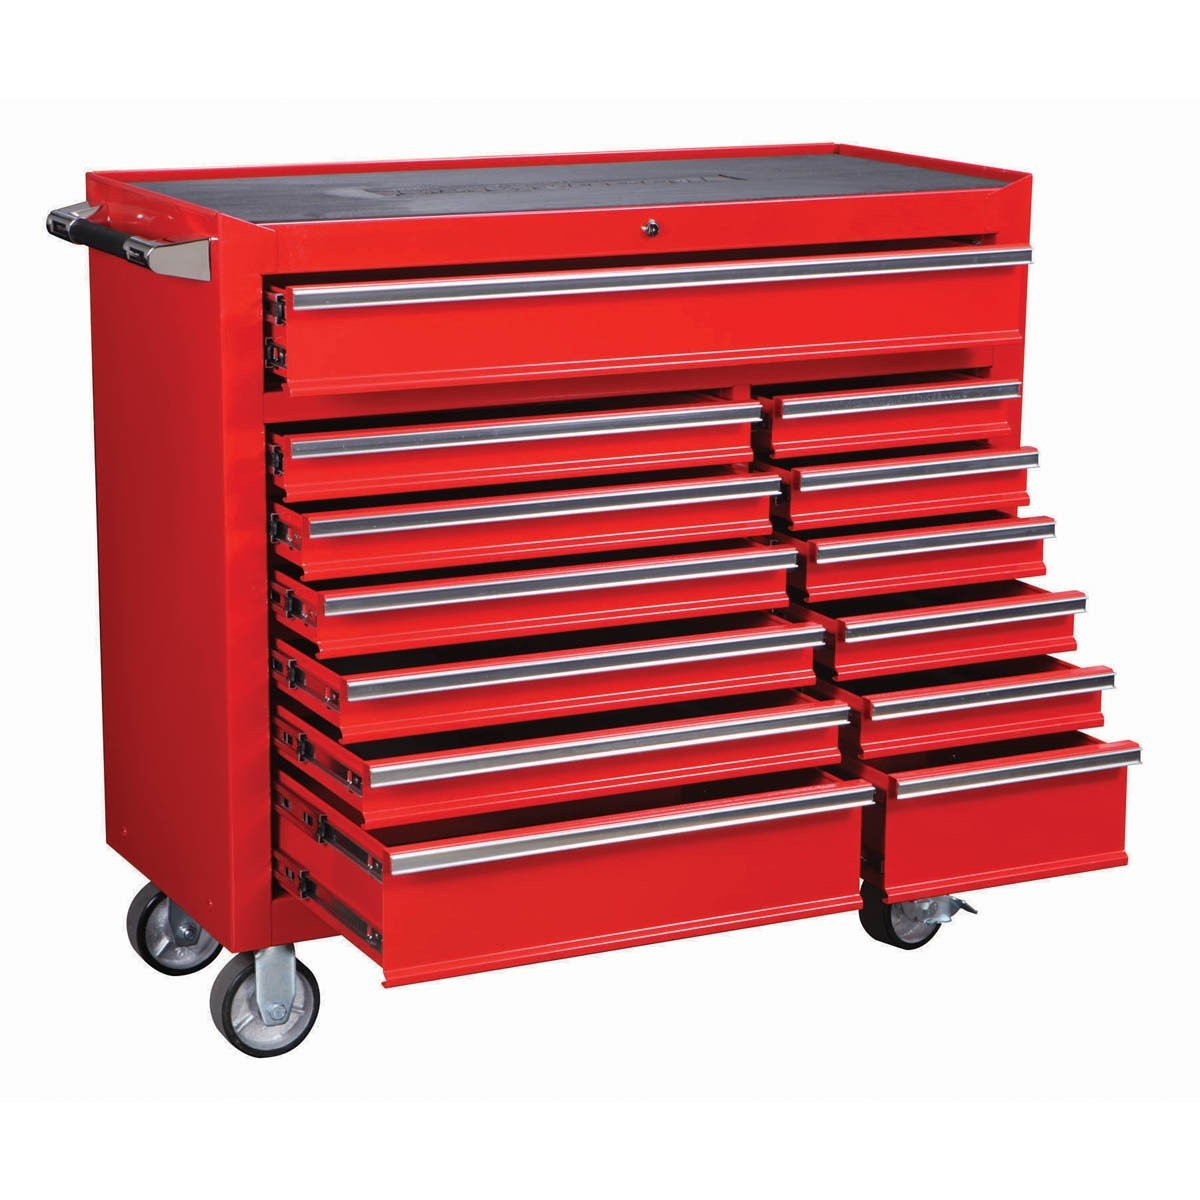 Amazon.com: ROLLER CABINET 2633 LB CAPACITY INDUSTRIAL QUALITY 13 ...